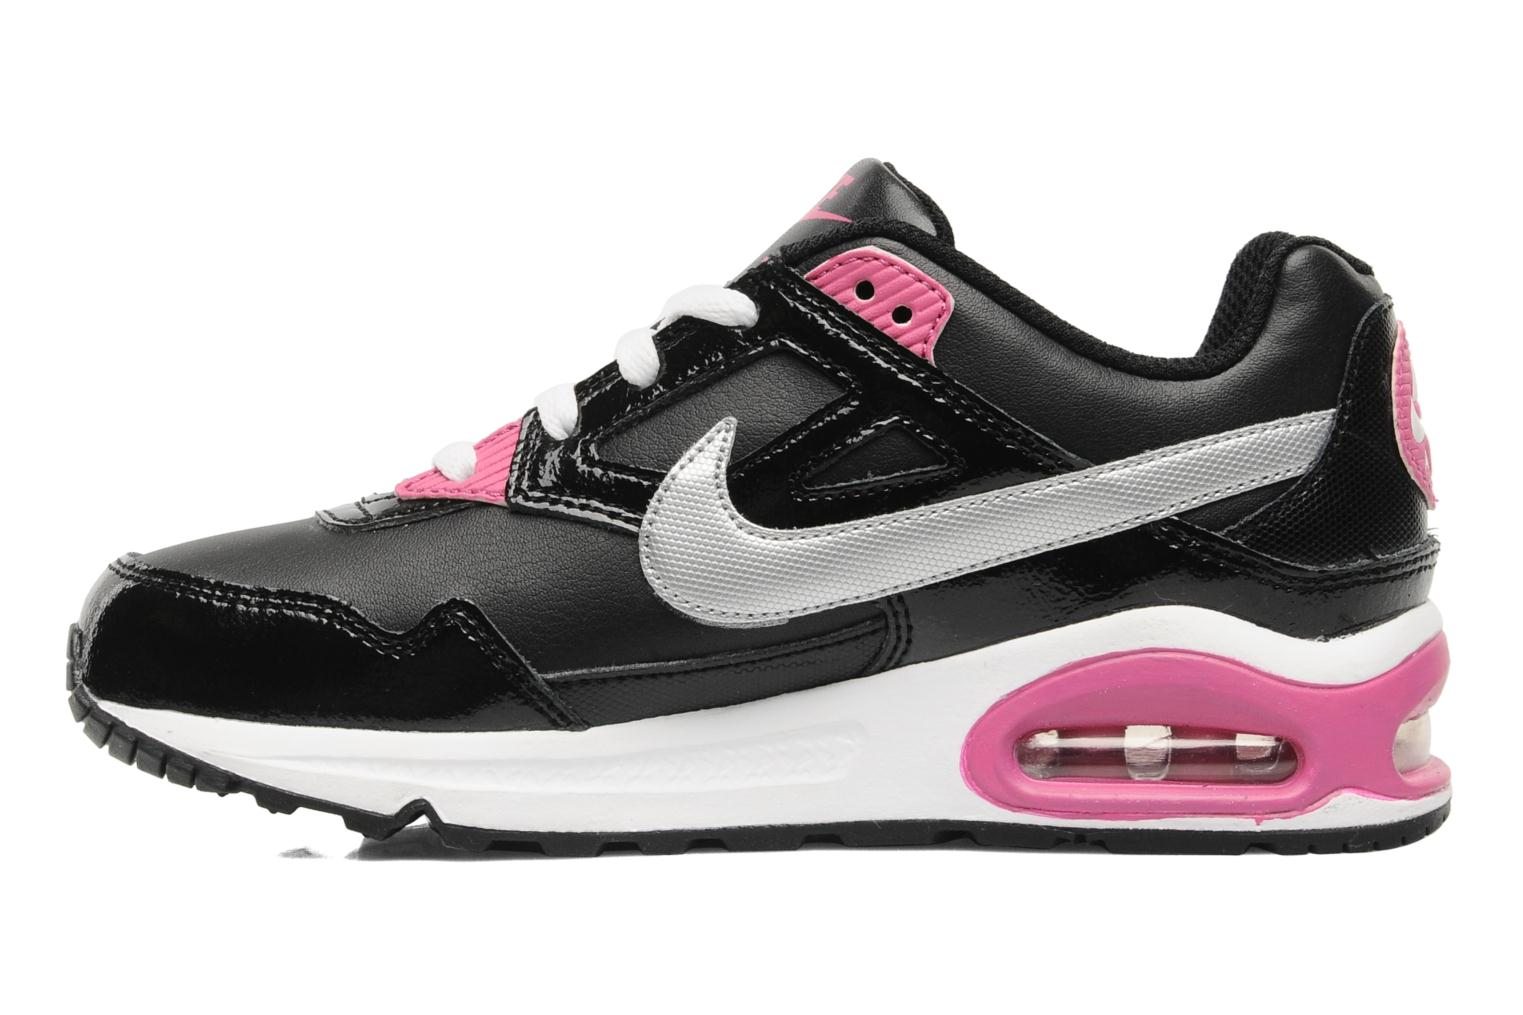 Nike Air Max Skyline Mens Running Shoes Review